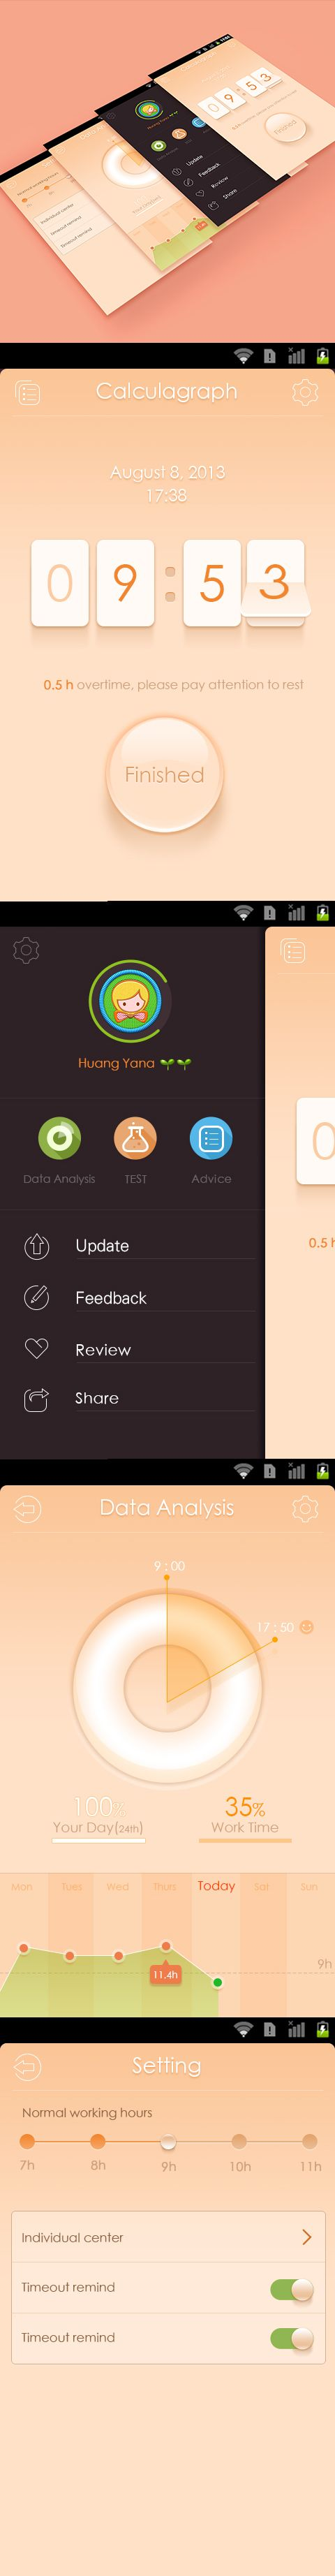 Sweet Interface by huangyana, via Dribbble